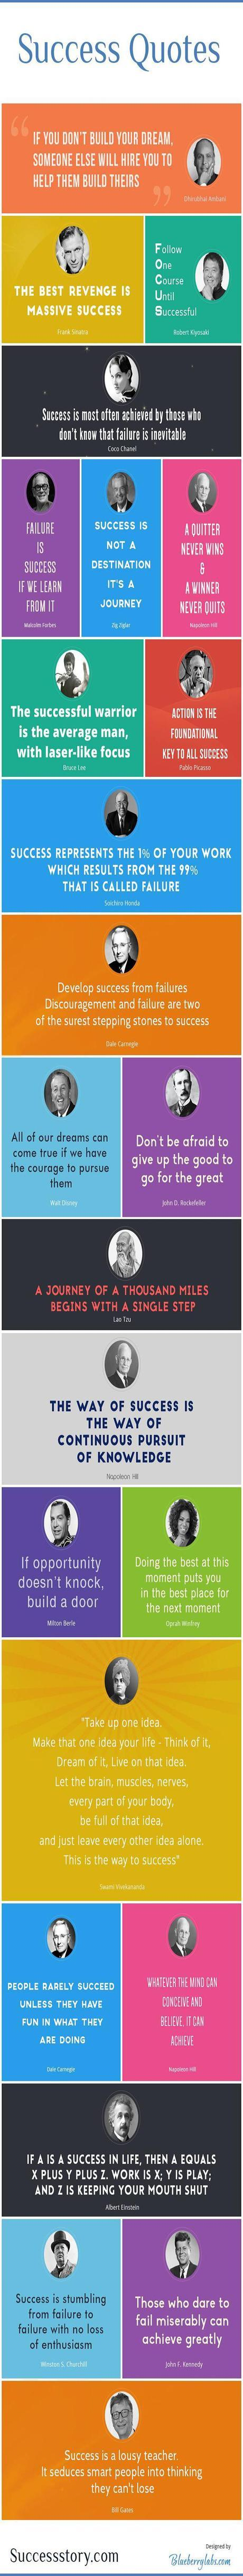 Inspiring Quotes for Success